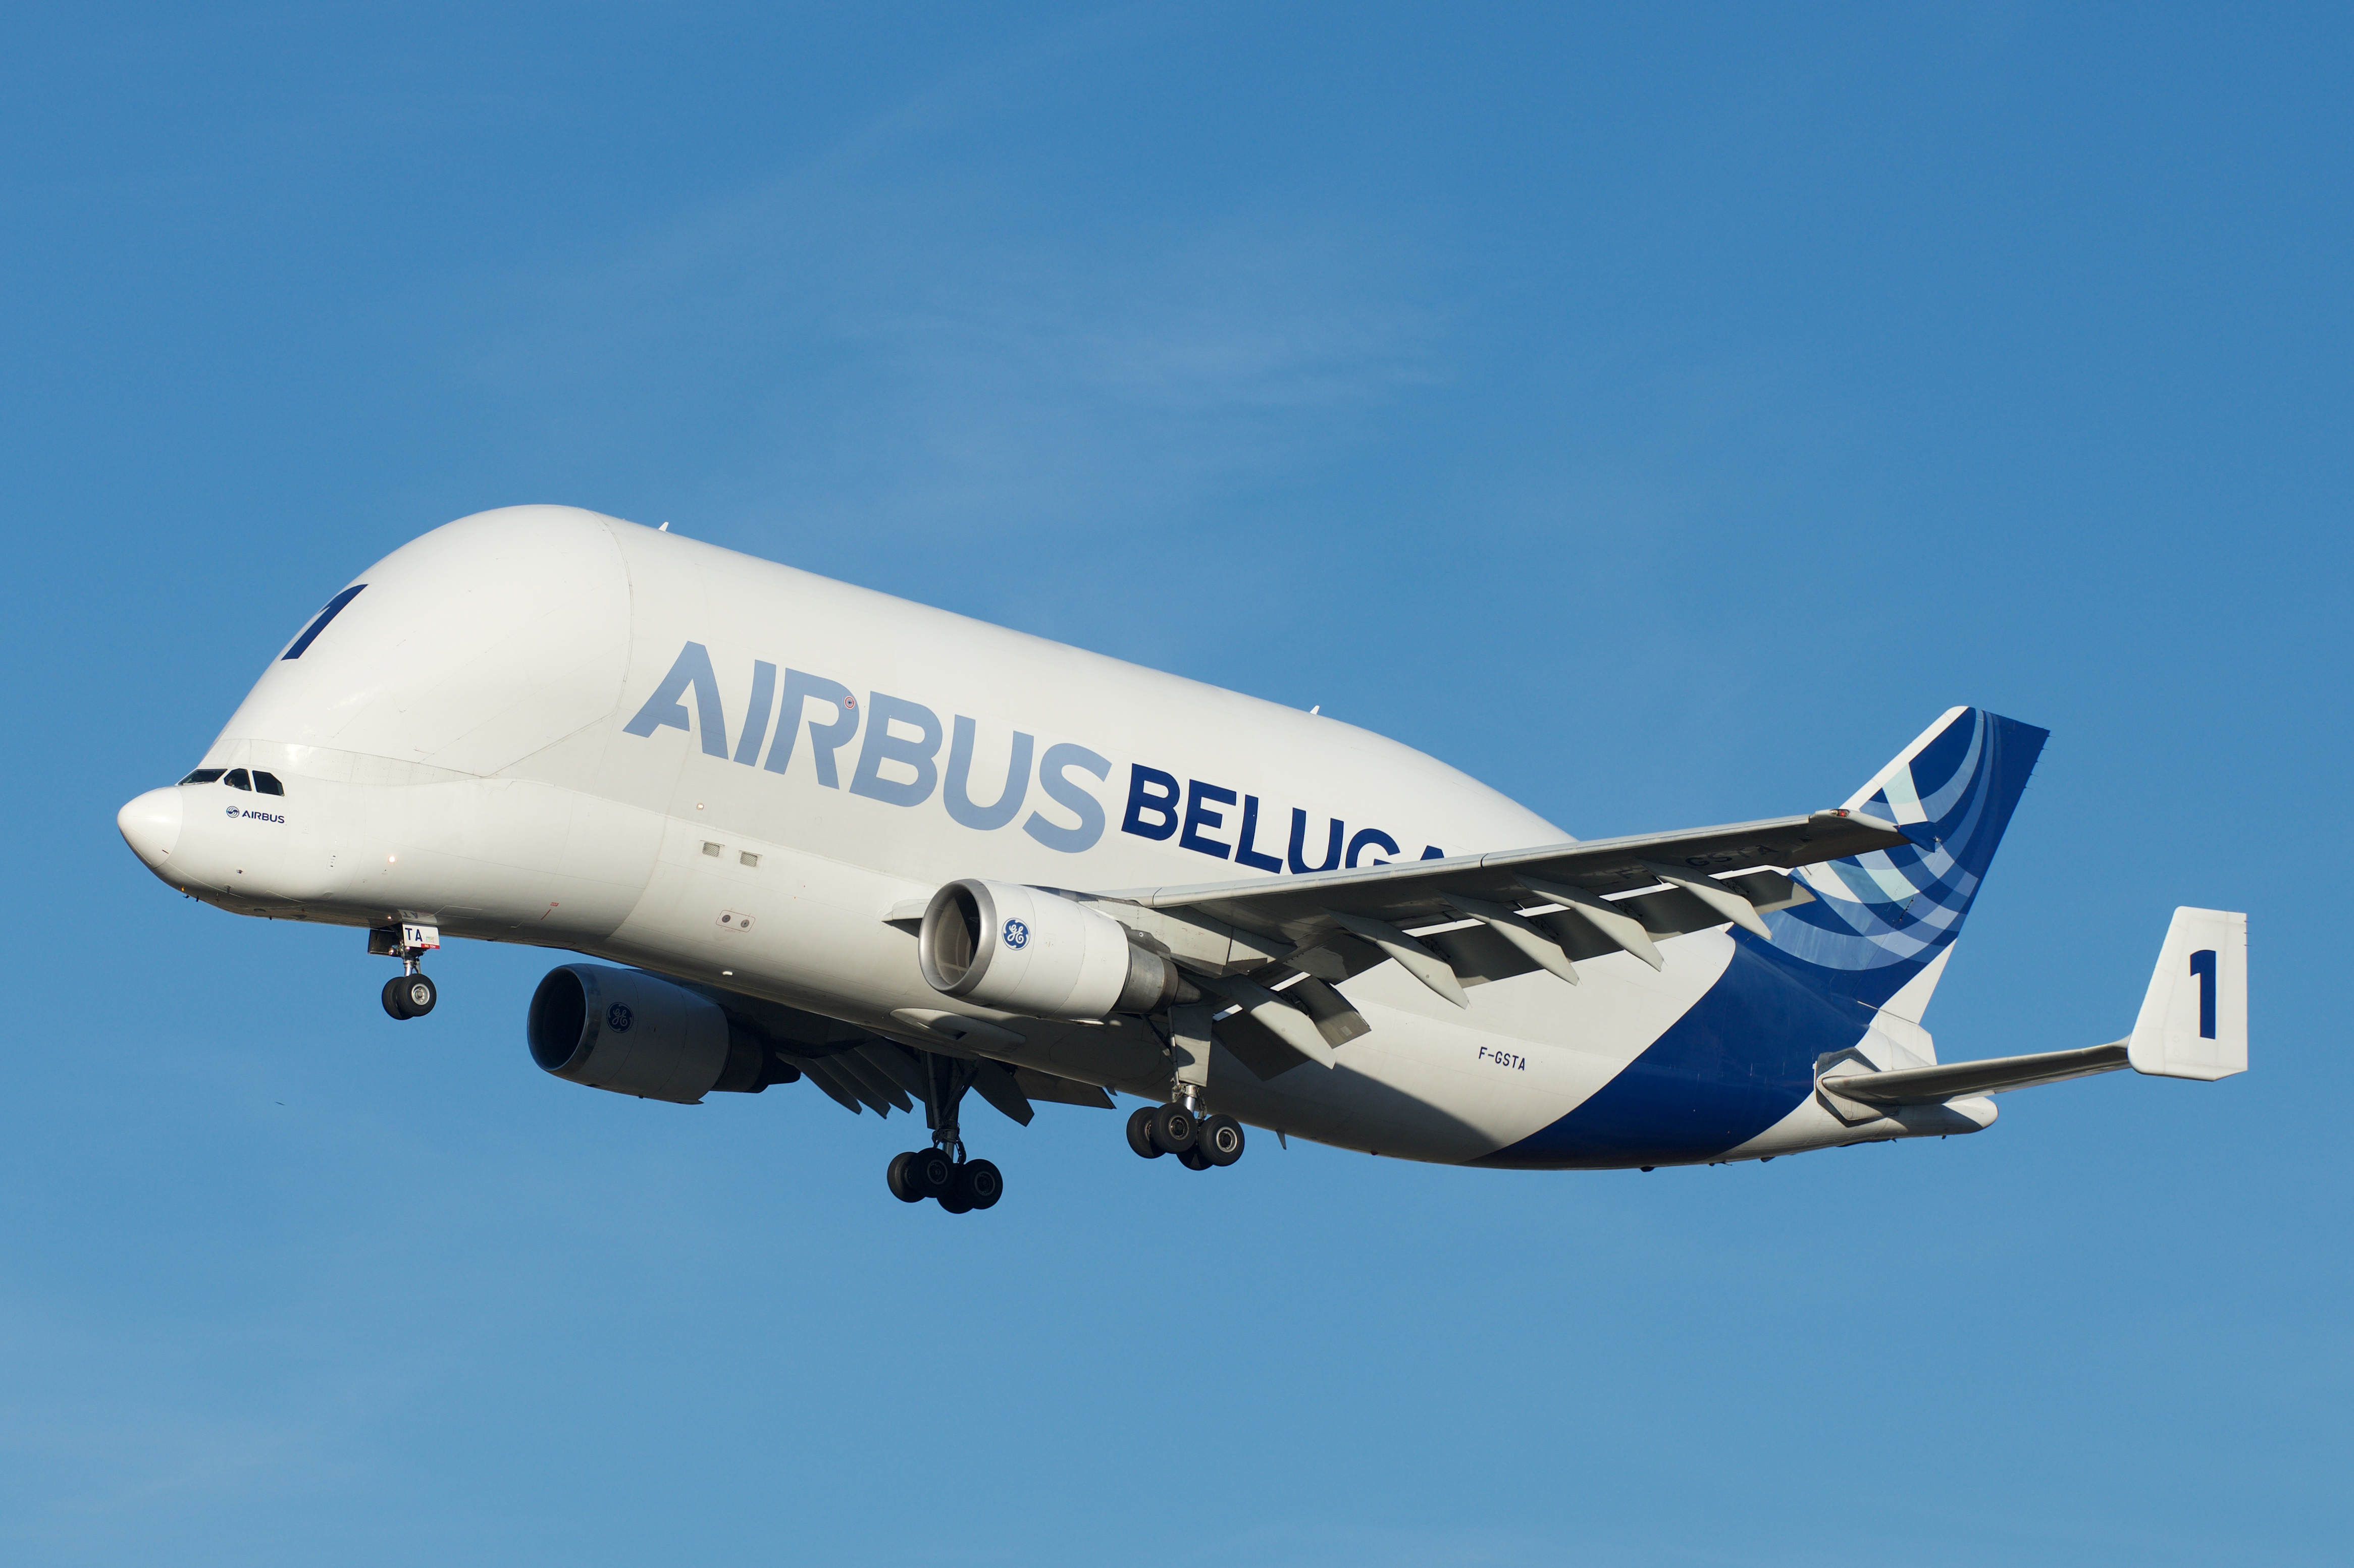 Depiction of Airbus A300-600ST Beluga